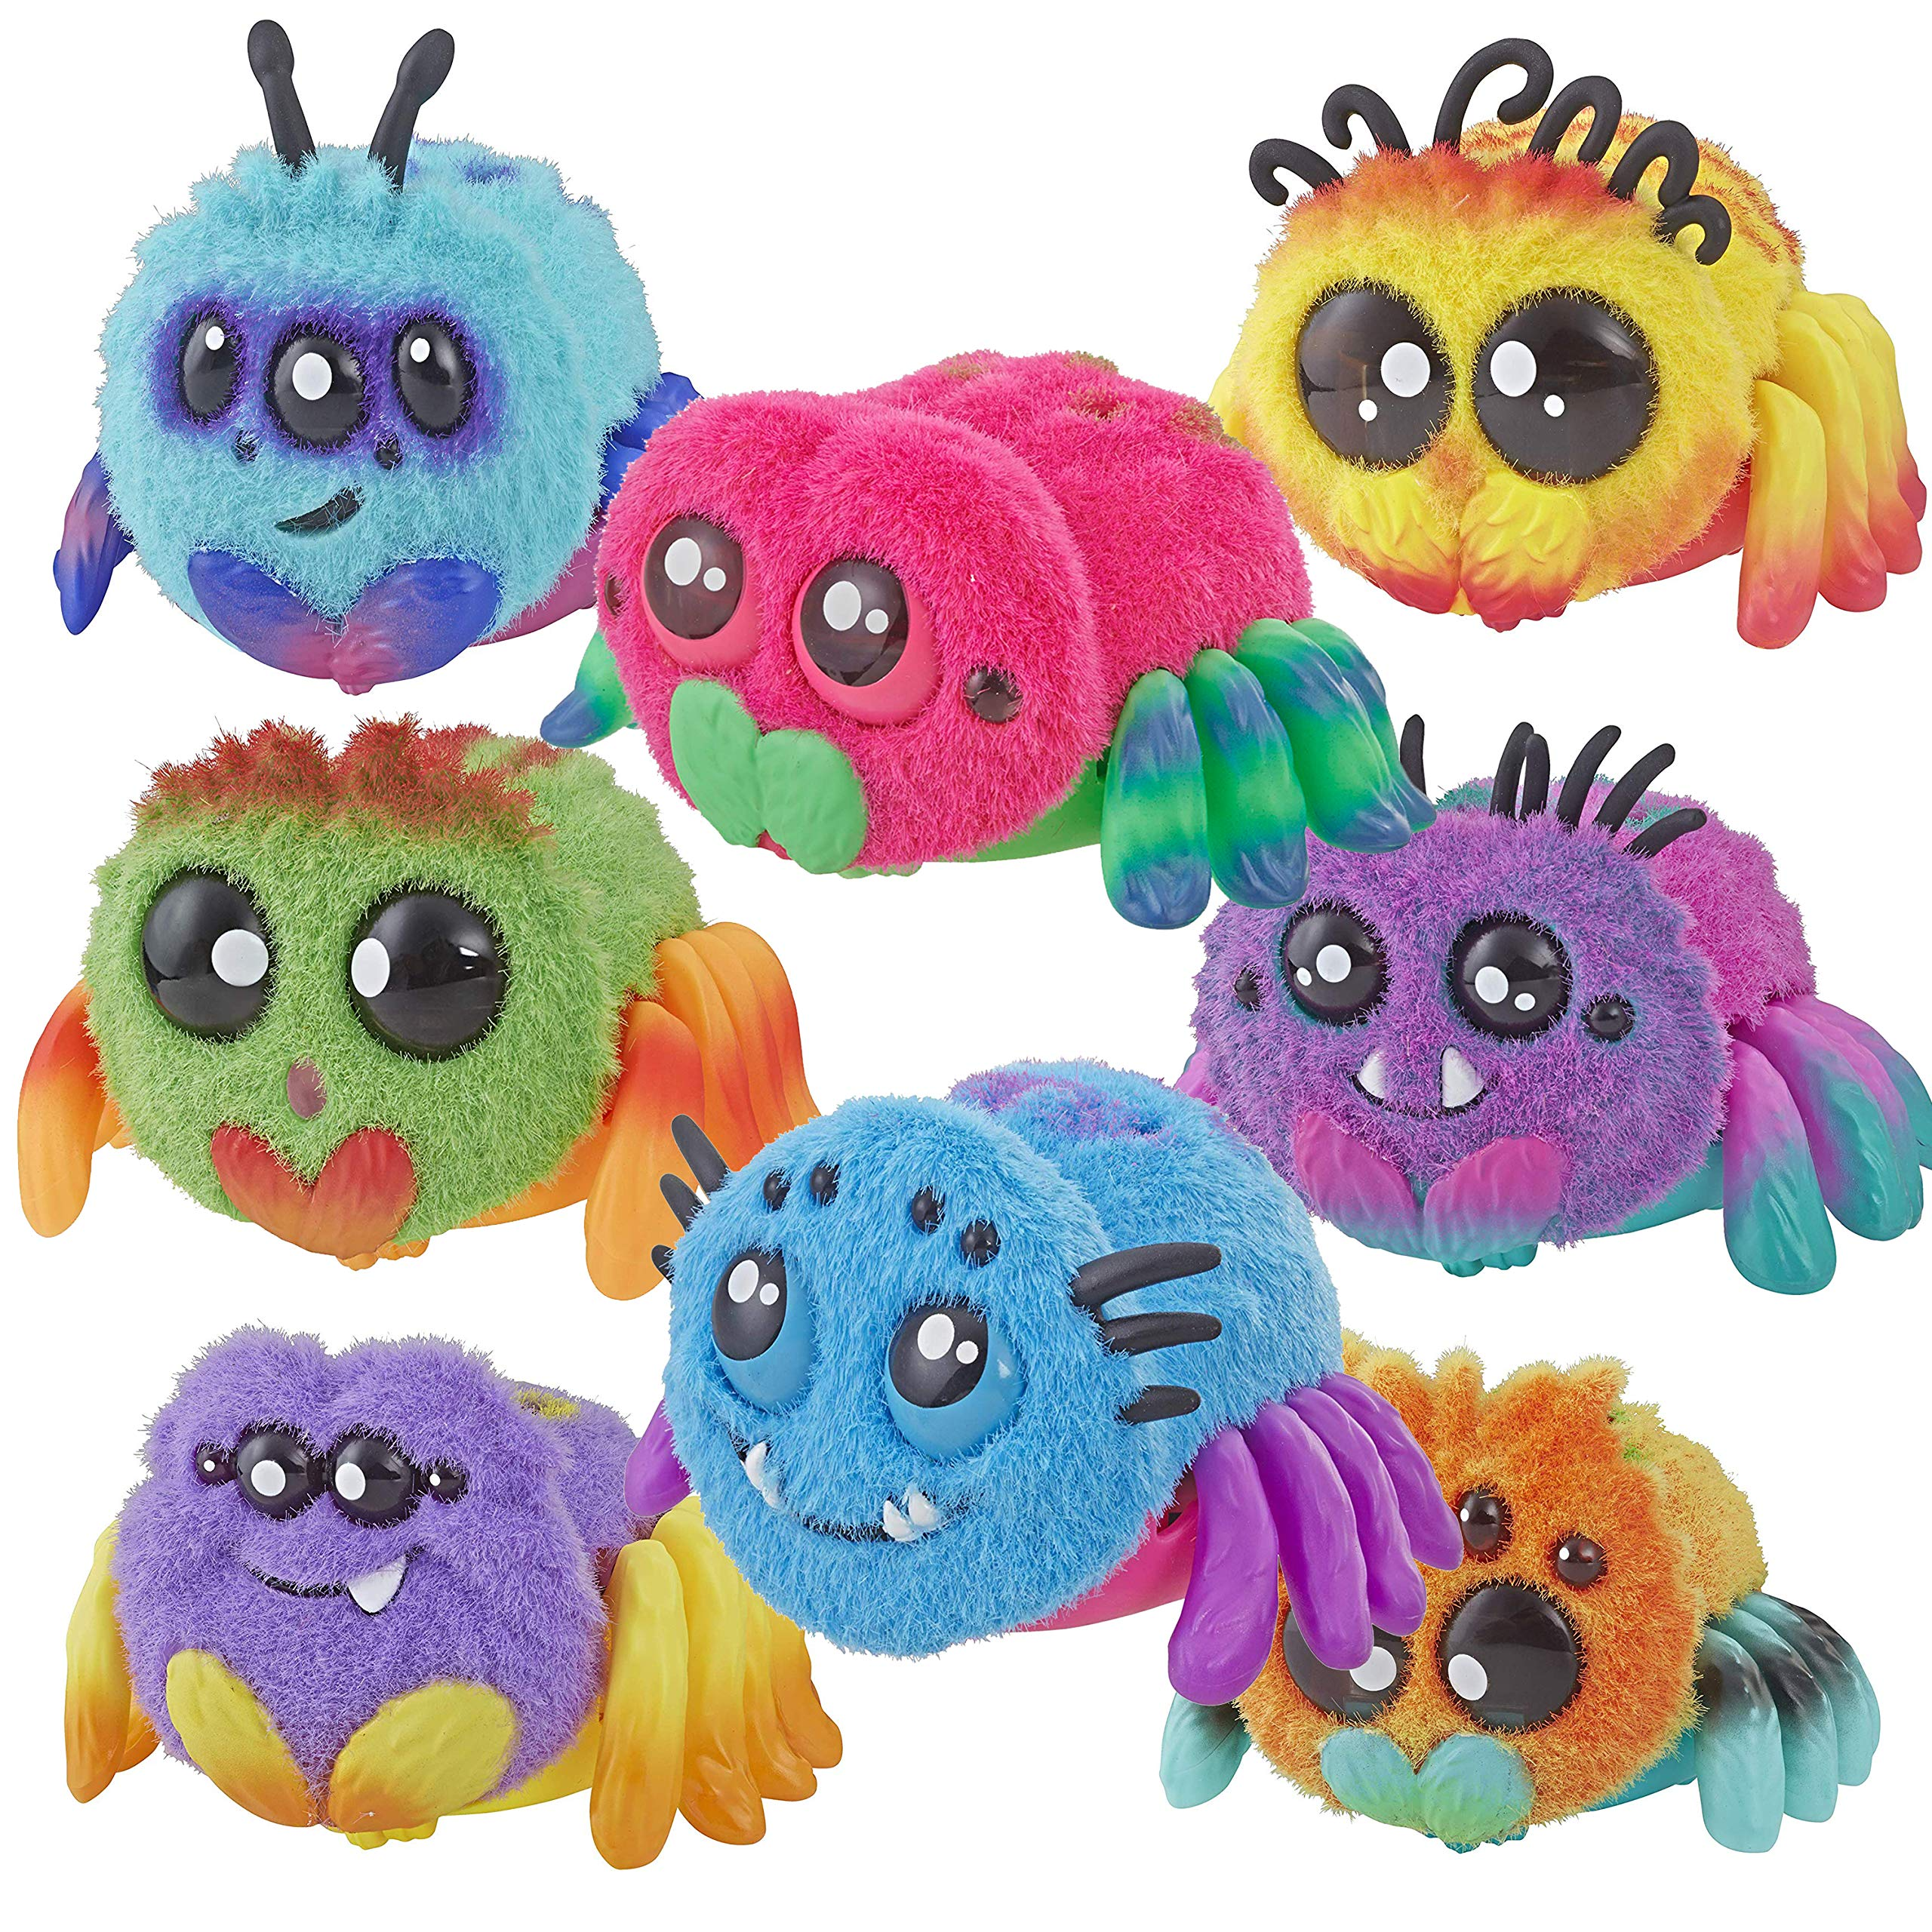 Spider Skadoodle, Sammie, FlufferPuff; Harry Scoots, Klutzers, Toofy Spooder, Bo Dangles and Peeks Voice-Activated Pet; Ages 5 and up - Set of 8 by Spider (Image #1)